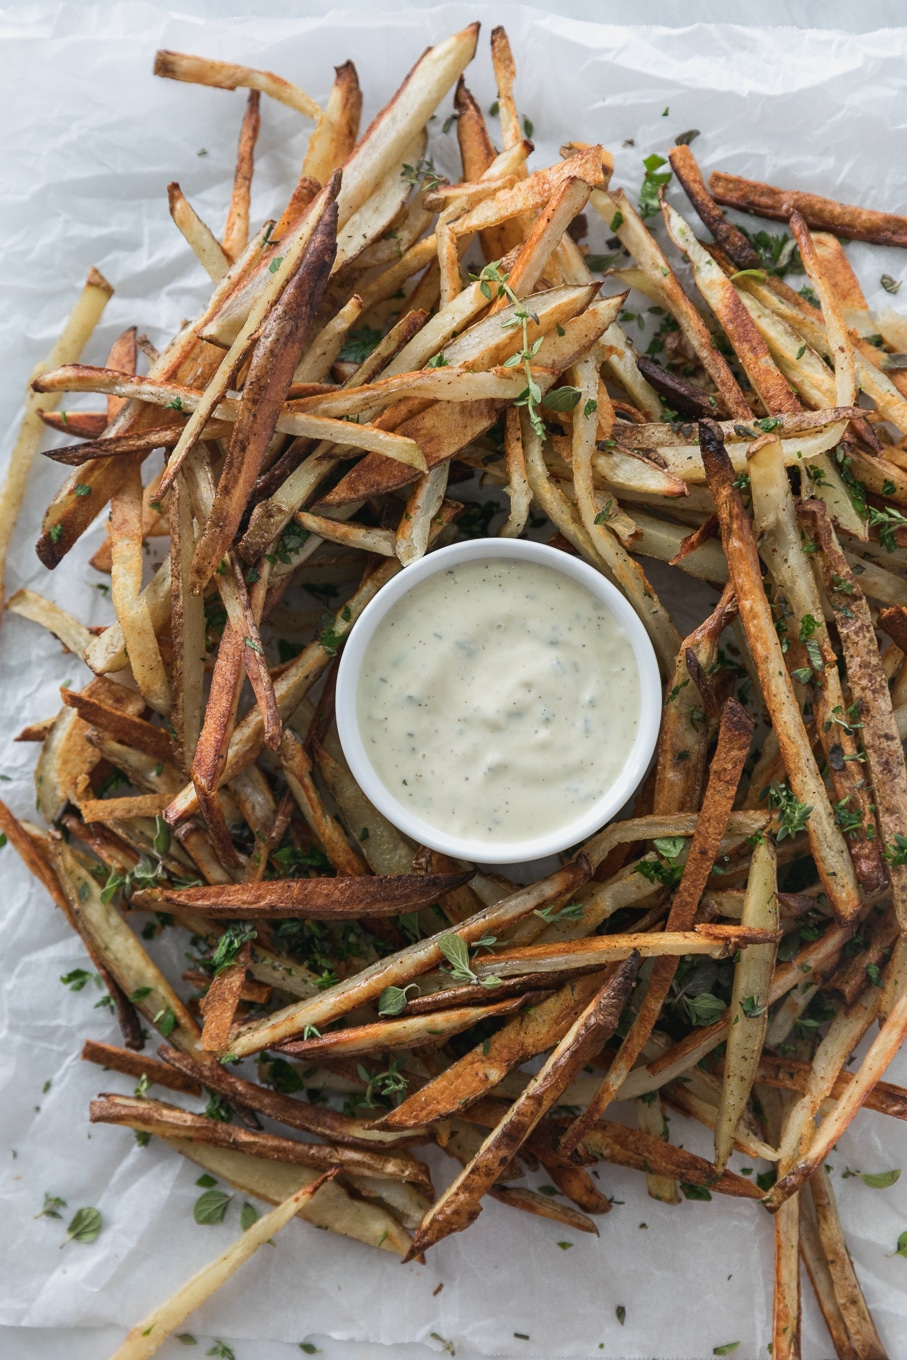 Overhead shot of a pile of thin french fries with herbs and a small bowl of aioli in the middle